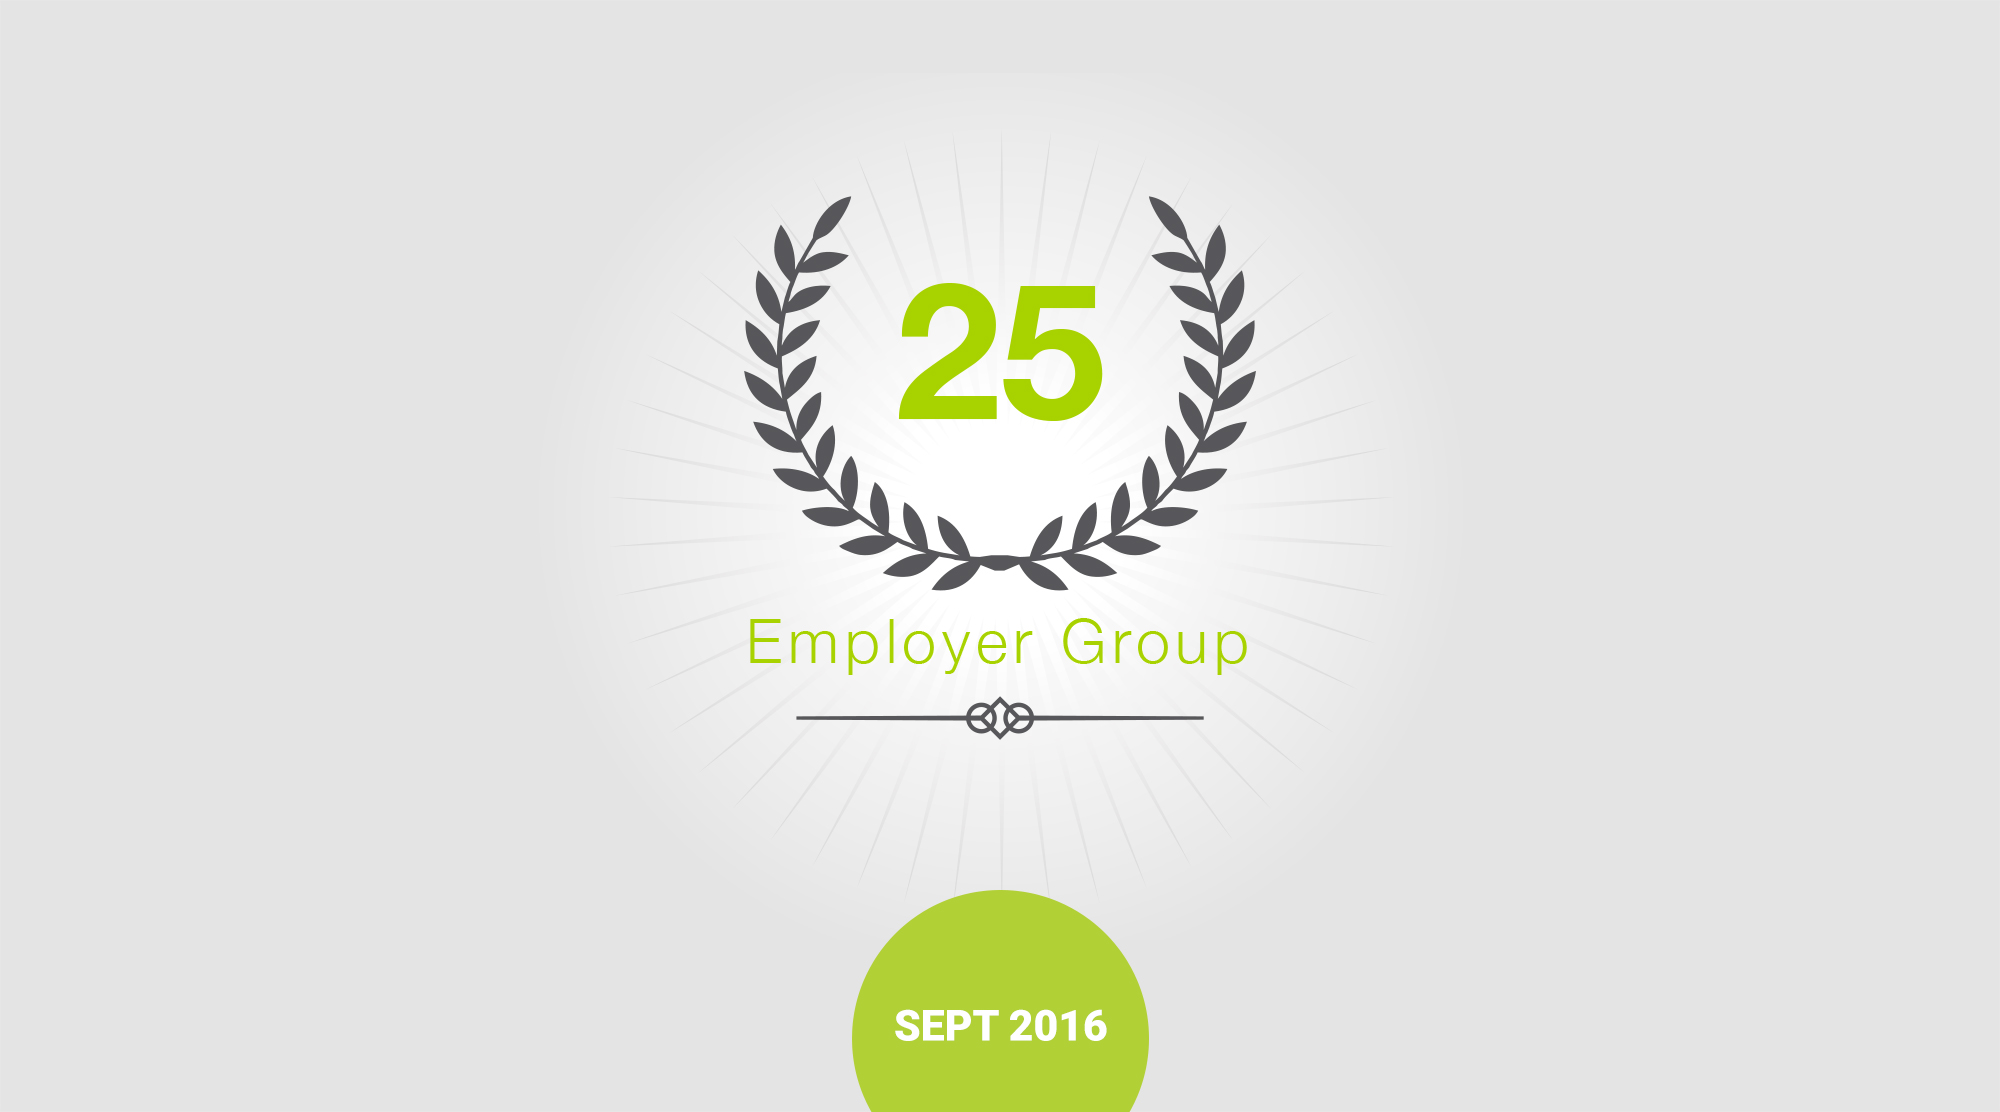 CHARGE launched 25th employer group badge and graphic